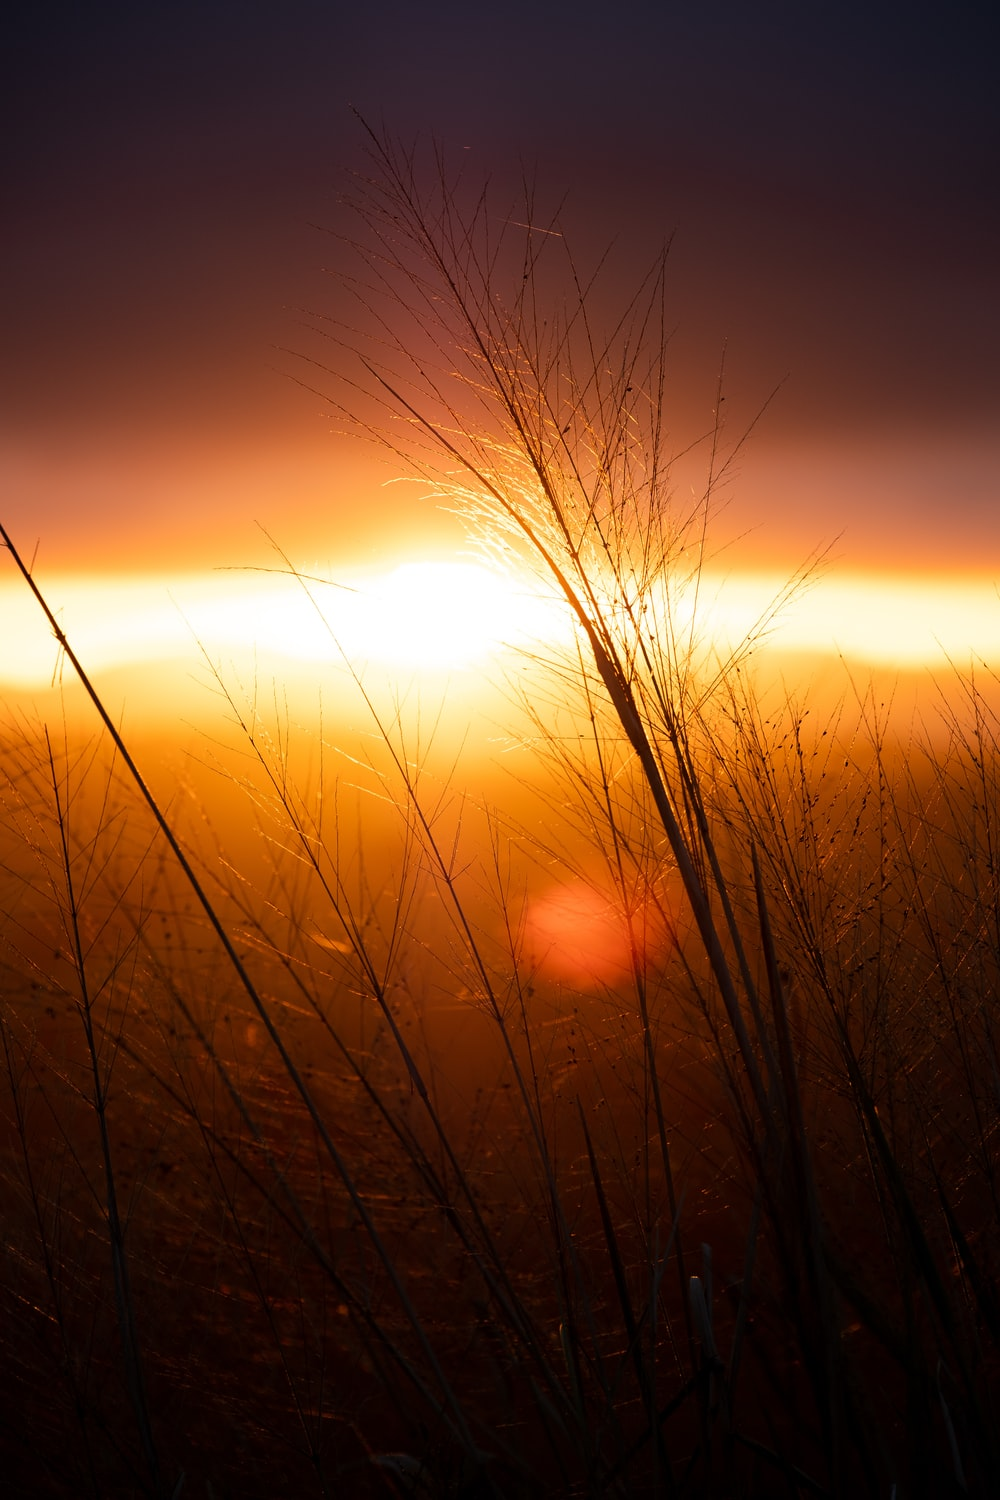 silhouette of grain field during sunset